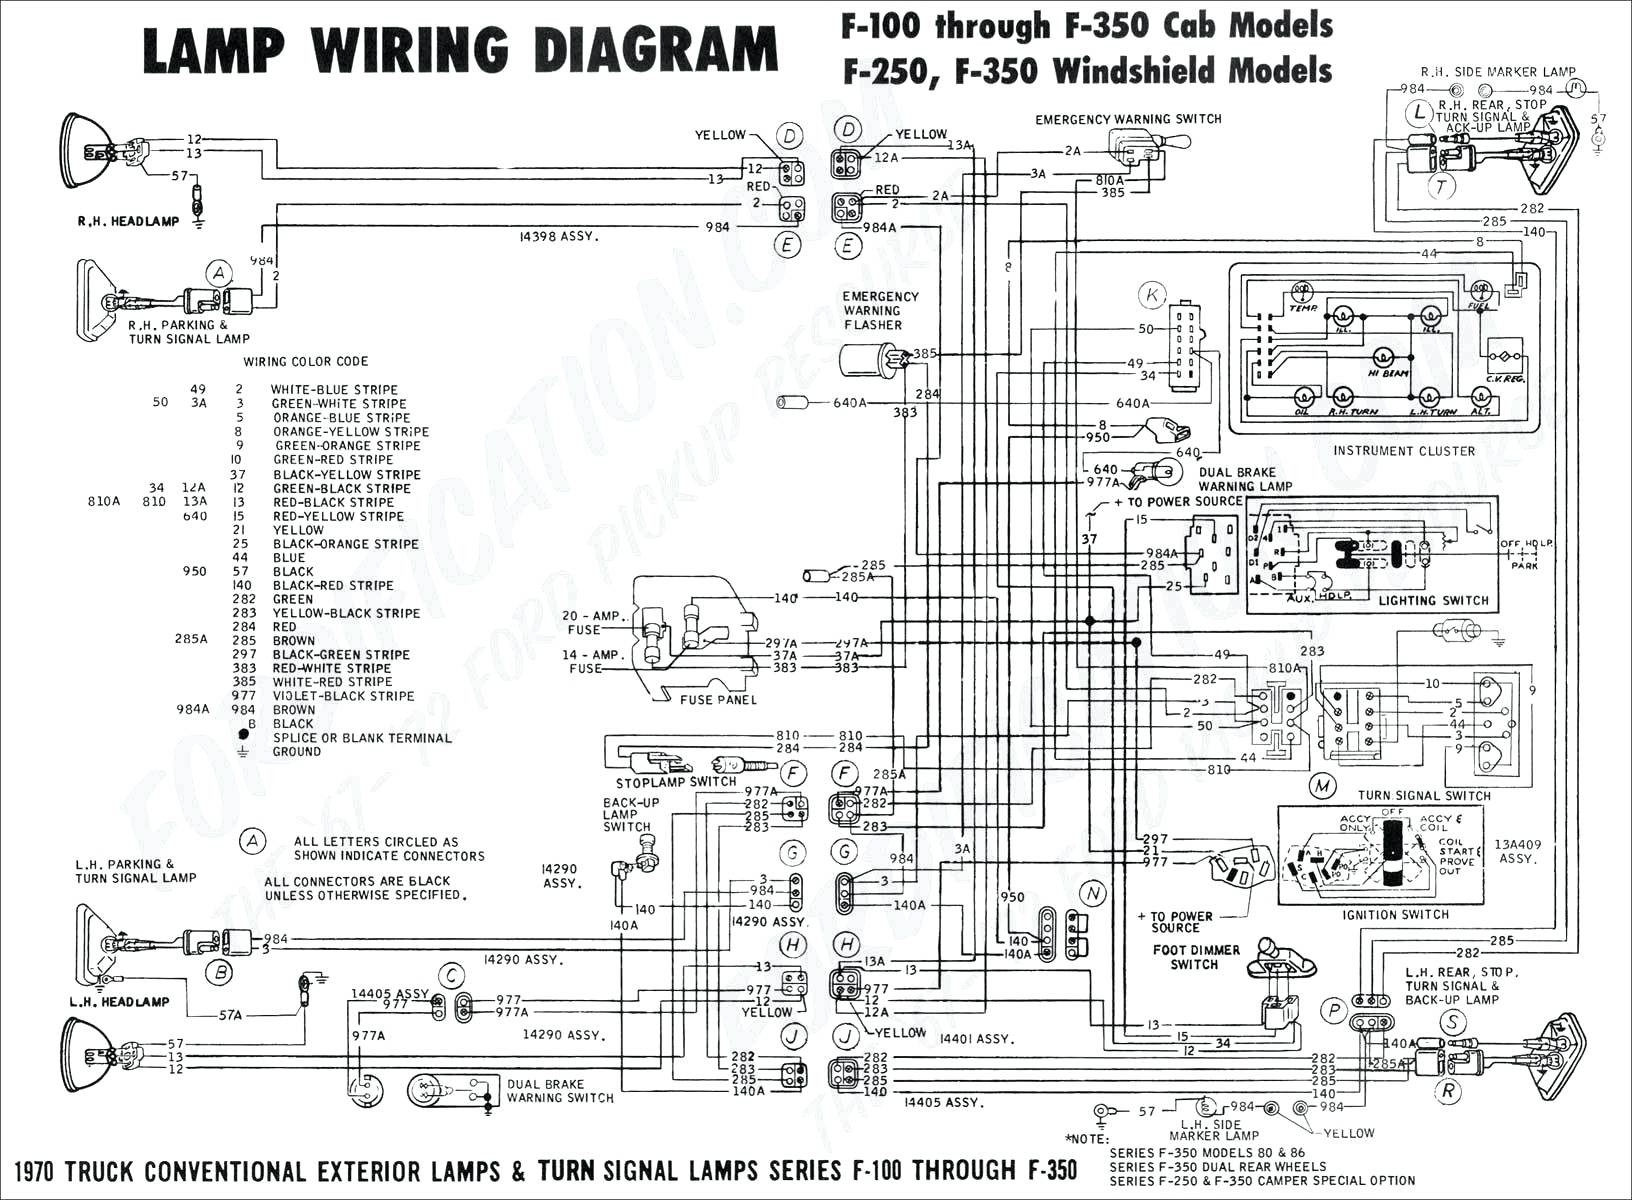 2000 ford excursion wiring diagram Collection-Ford F350 Trailer Wiring Diagram Trailer Wiring Diagram ford Ranger Inspirationa 2000 ford F250 Trailer 13-e